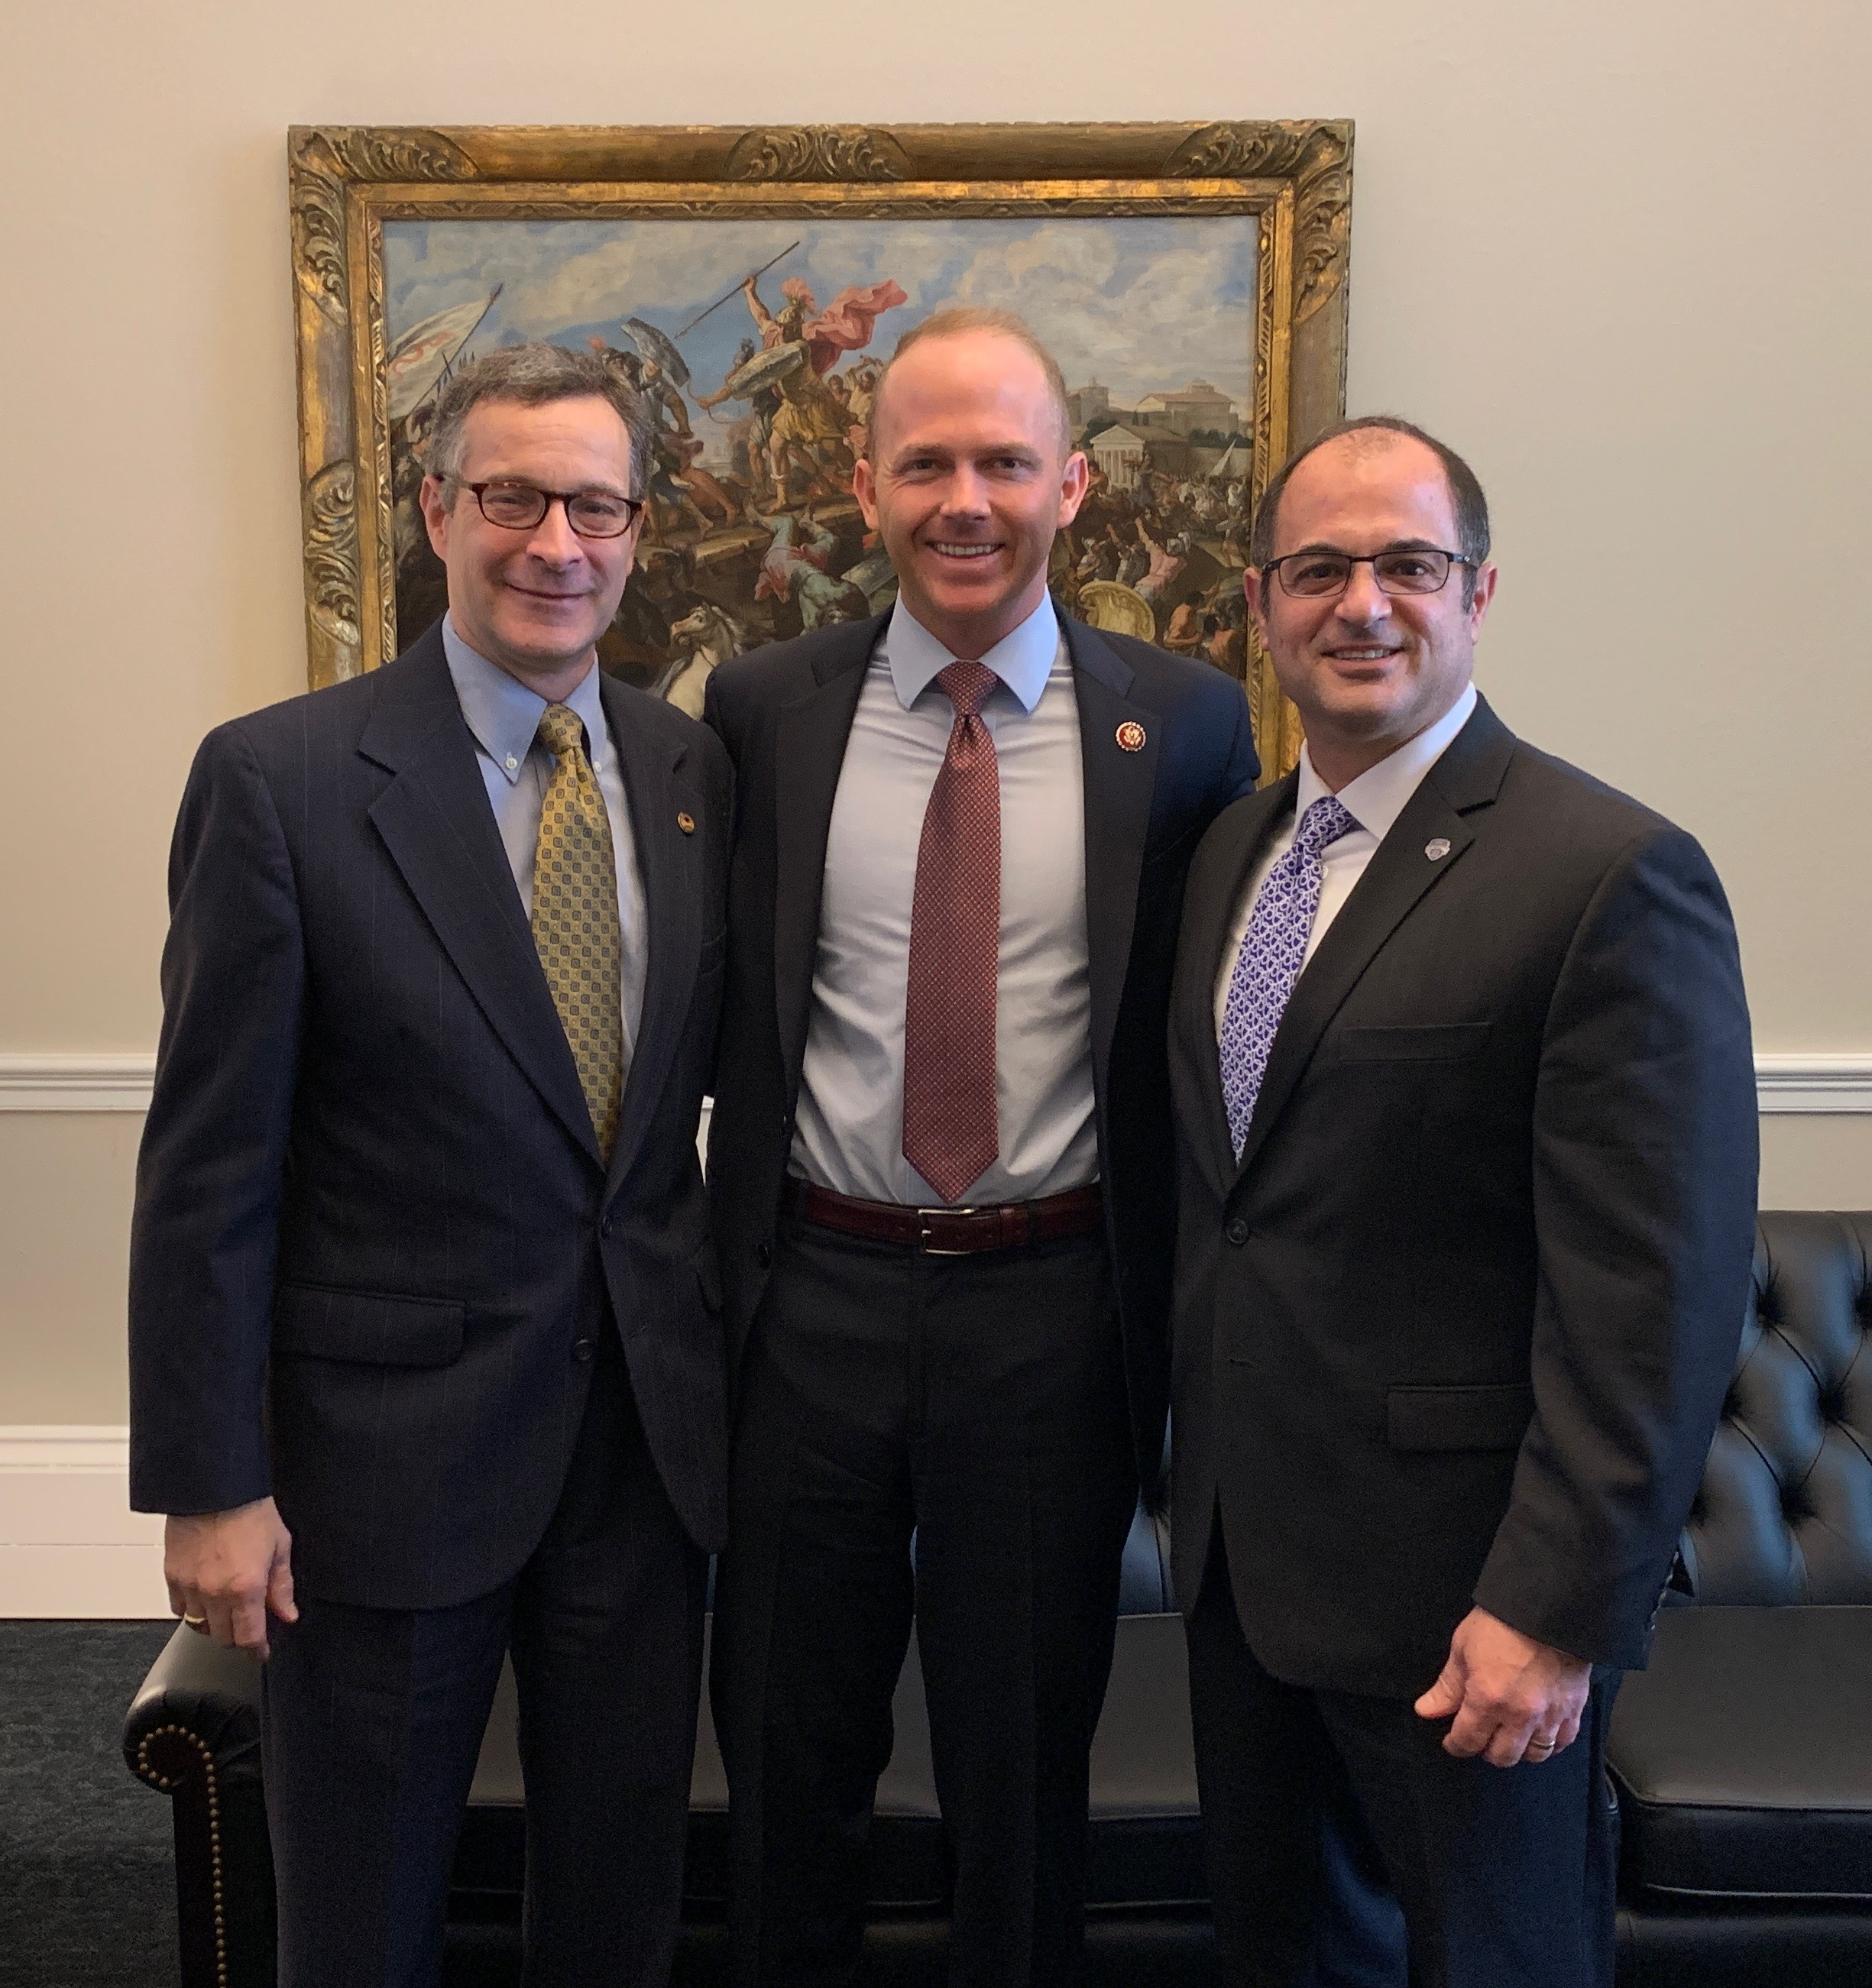 SCICU's Jeff Perez and Spartanburg Methodist's Scott Cochran met w/ Rep. William Timmons on NAICU Advocacy Day on Feb. 5.